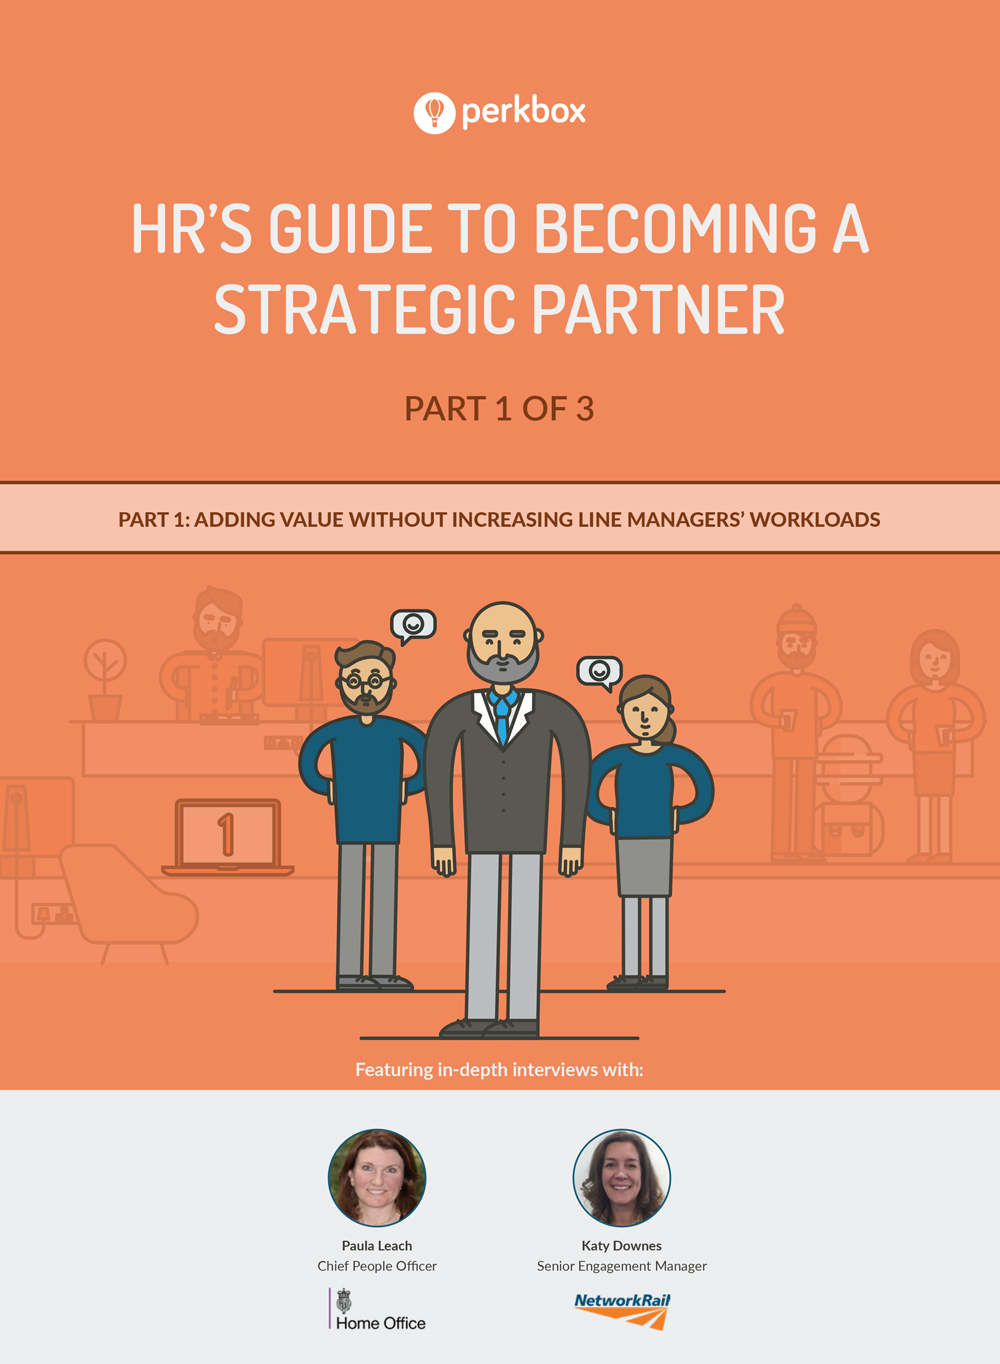 HR's Guide To Becoming A Strategic Partner - Part 1